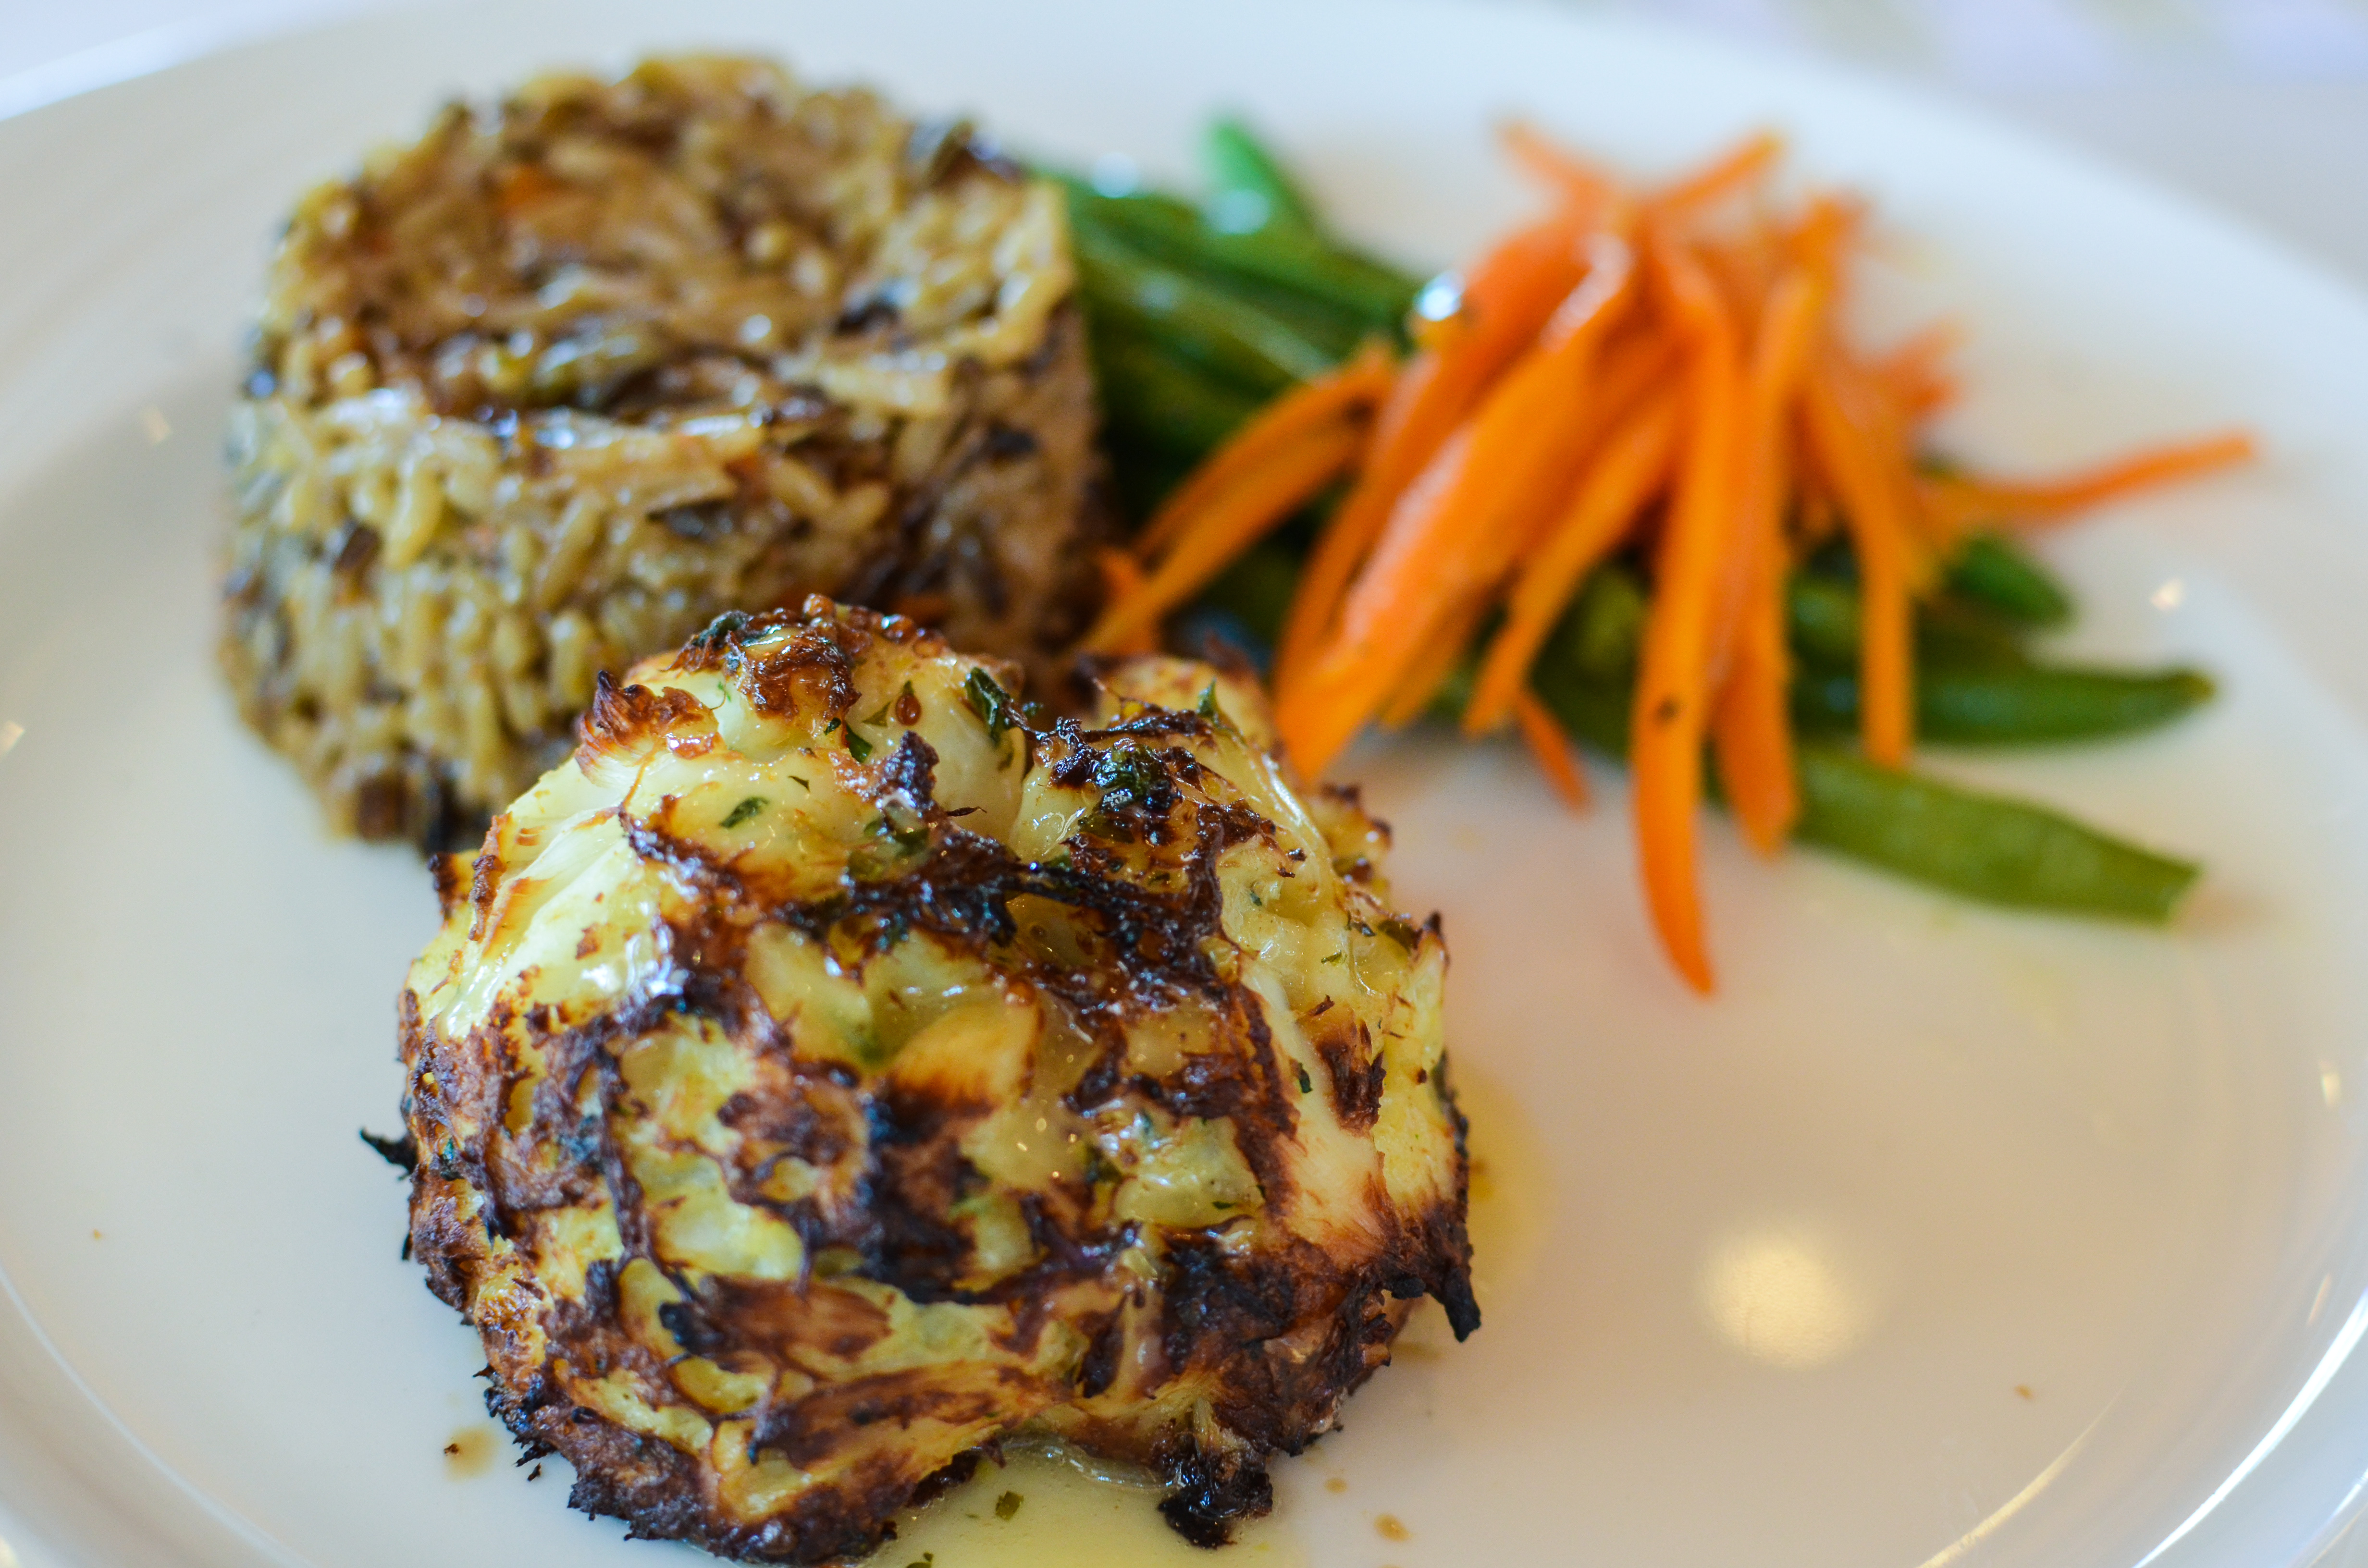 A Maryland crabcake. Source: Flickr/m01229.